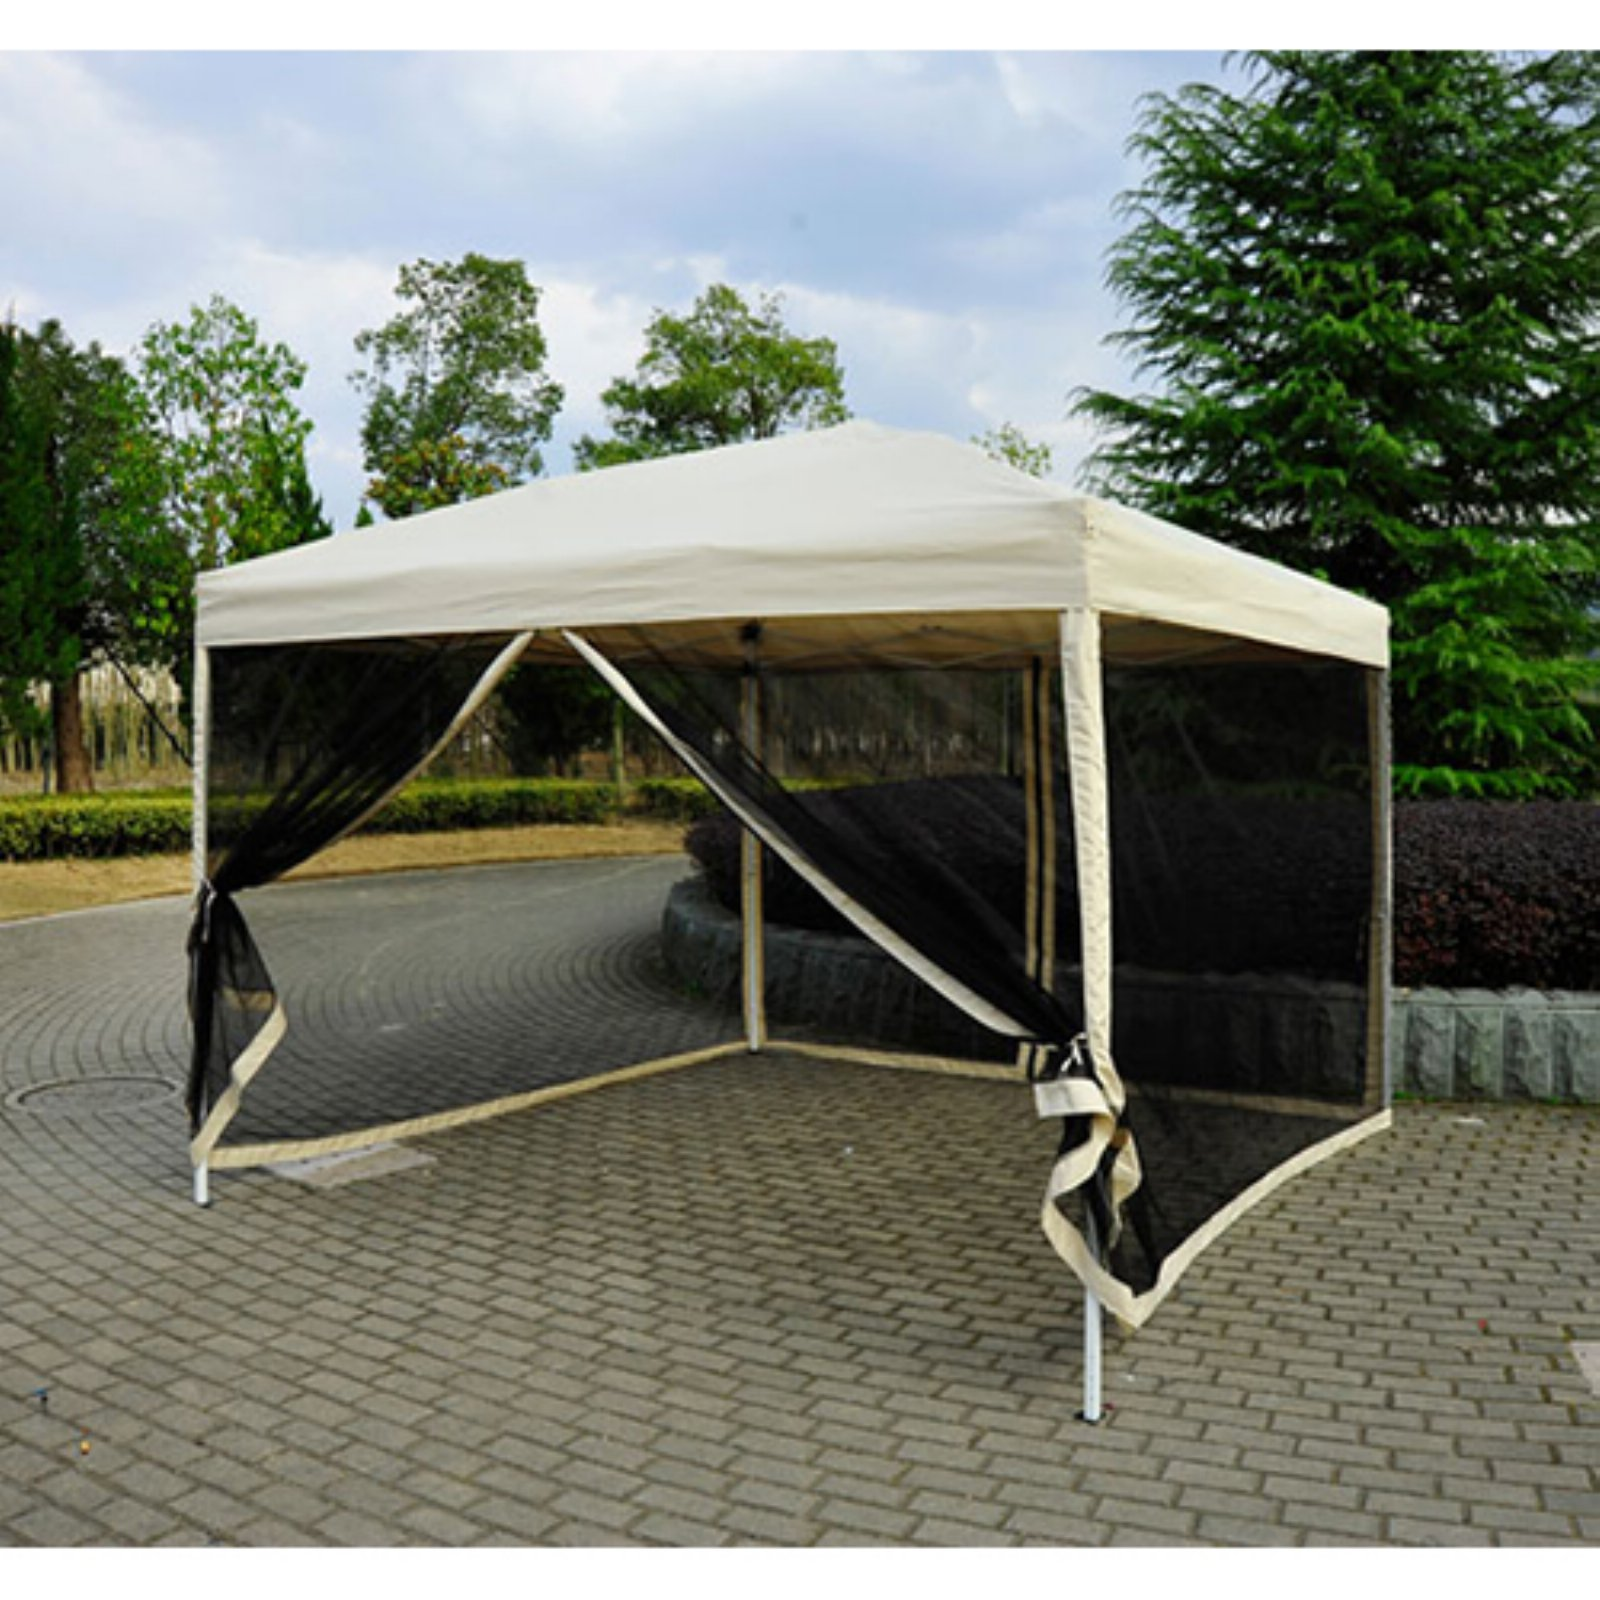 Outsunny 10 x 10 ft. Easy Pop Up Canopy with Mesh Side Walls